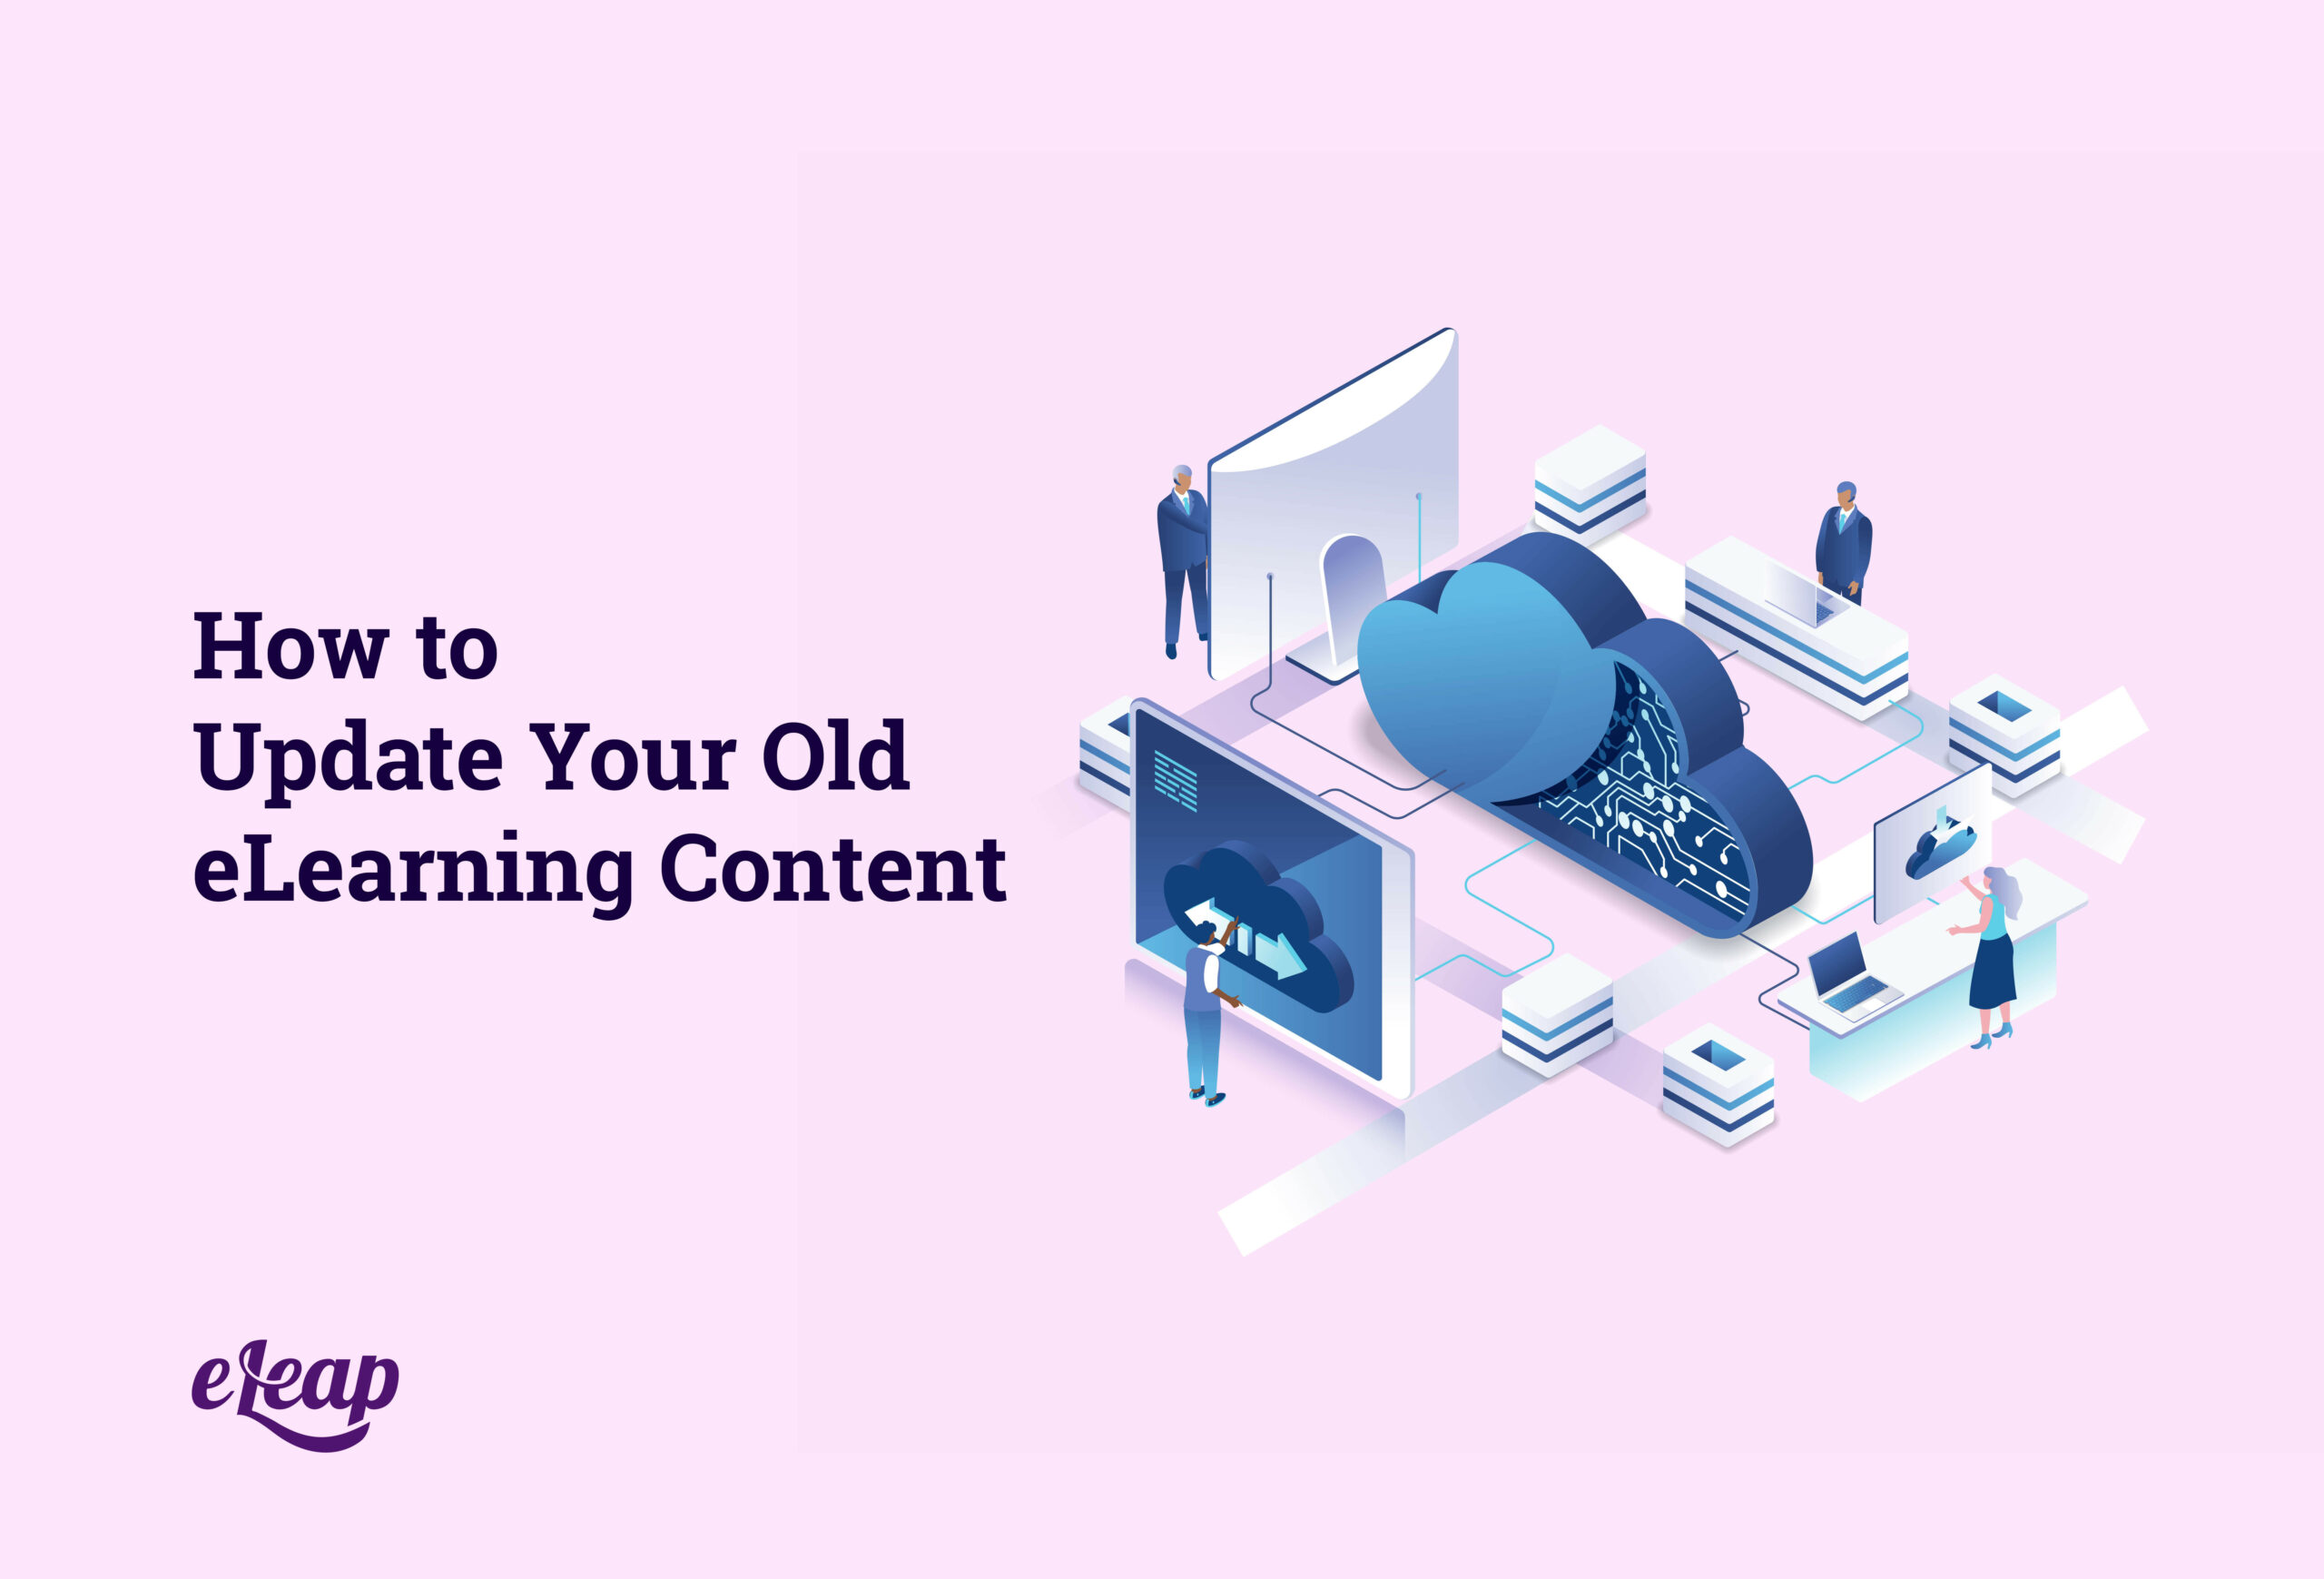 How to Update Your Old eLearning Content